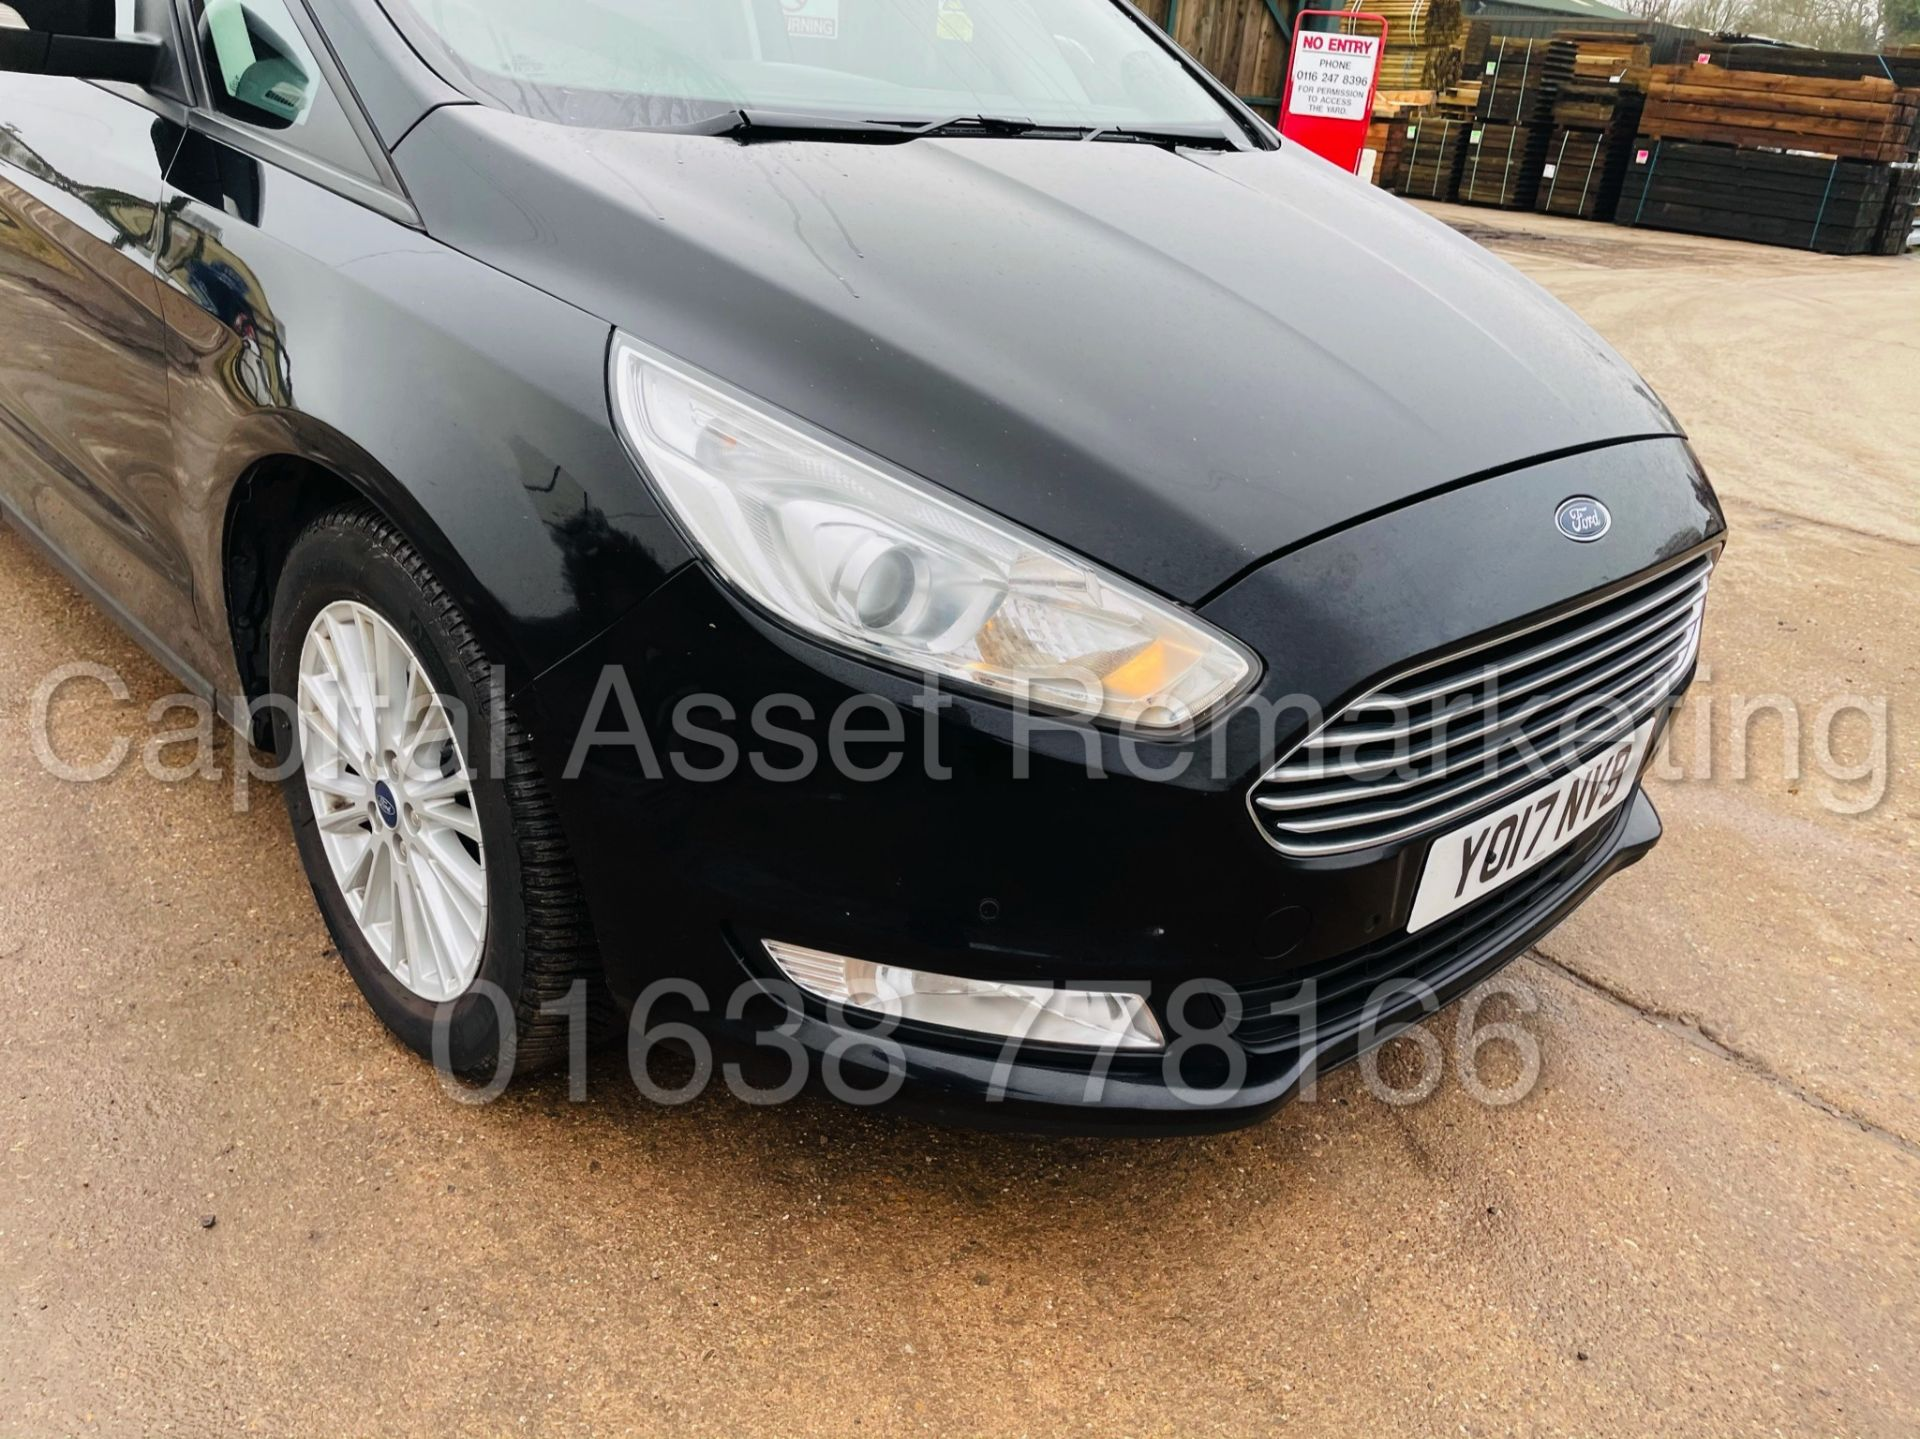 (On Sale) FORD GALAXY *ZETEC EDITION* 7 SEATER MPV (2017 - EURO 6) '2.0 TDCI - AUTO' (1 OWNER) - Image 16 of 48